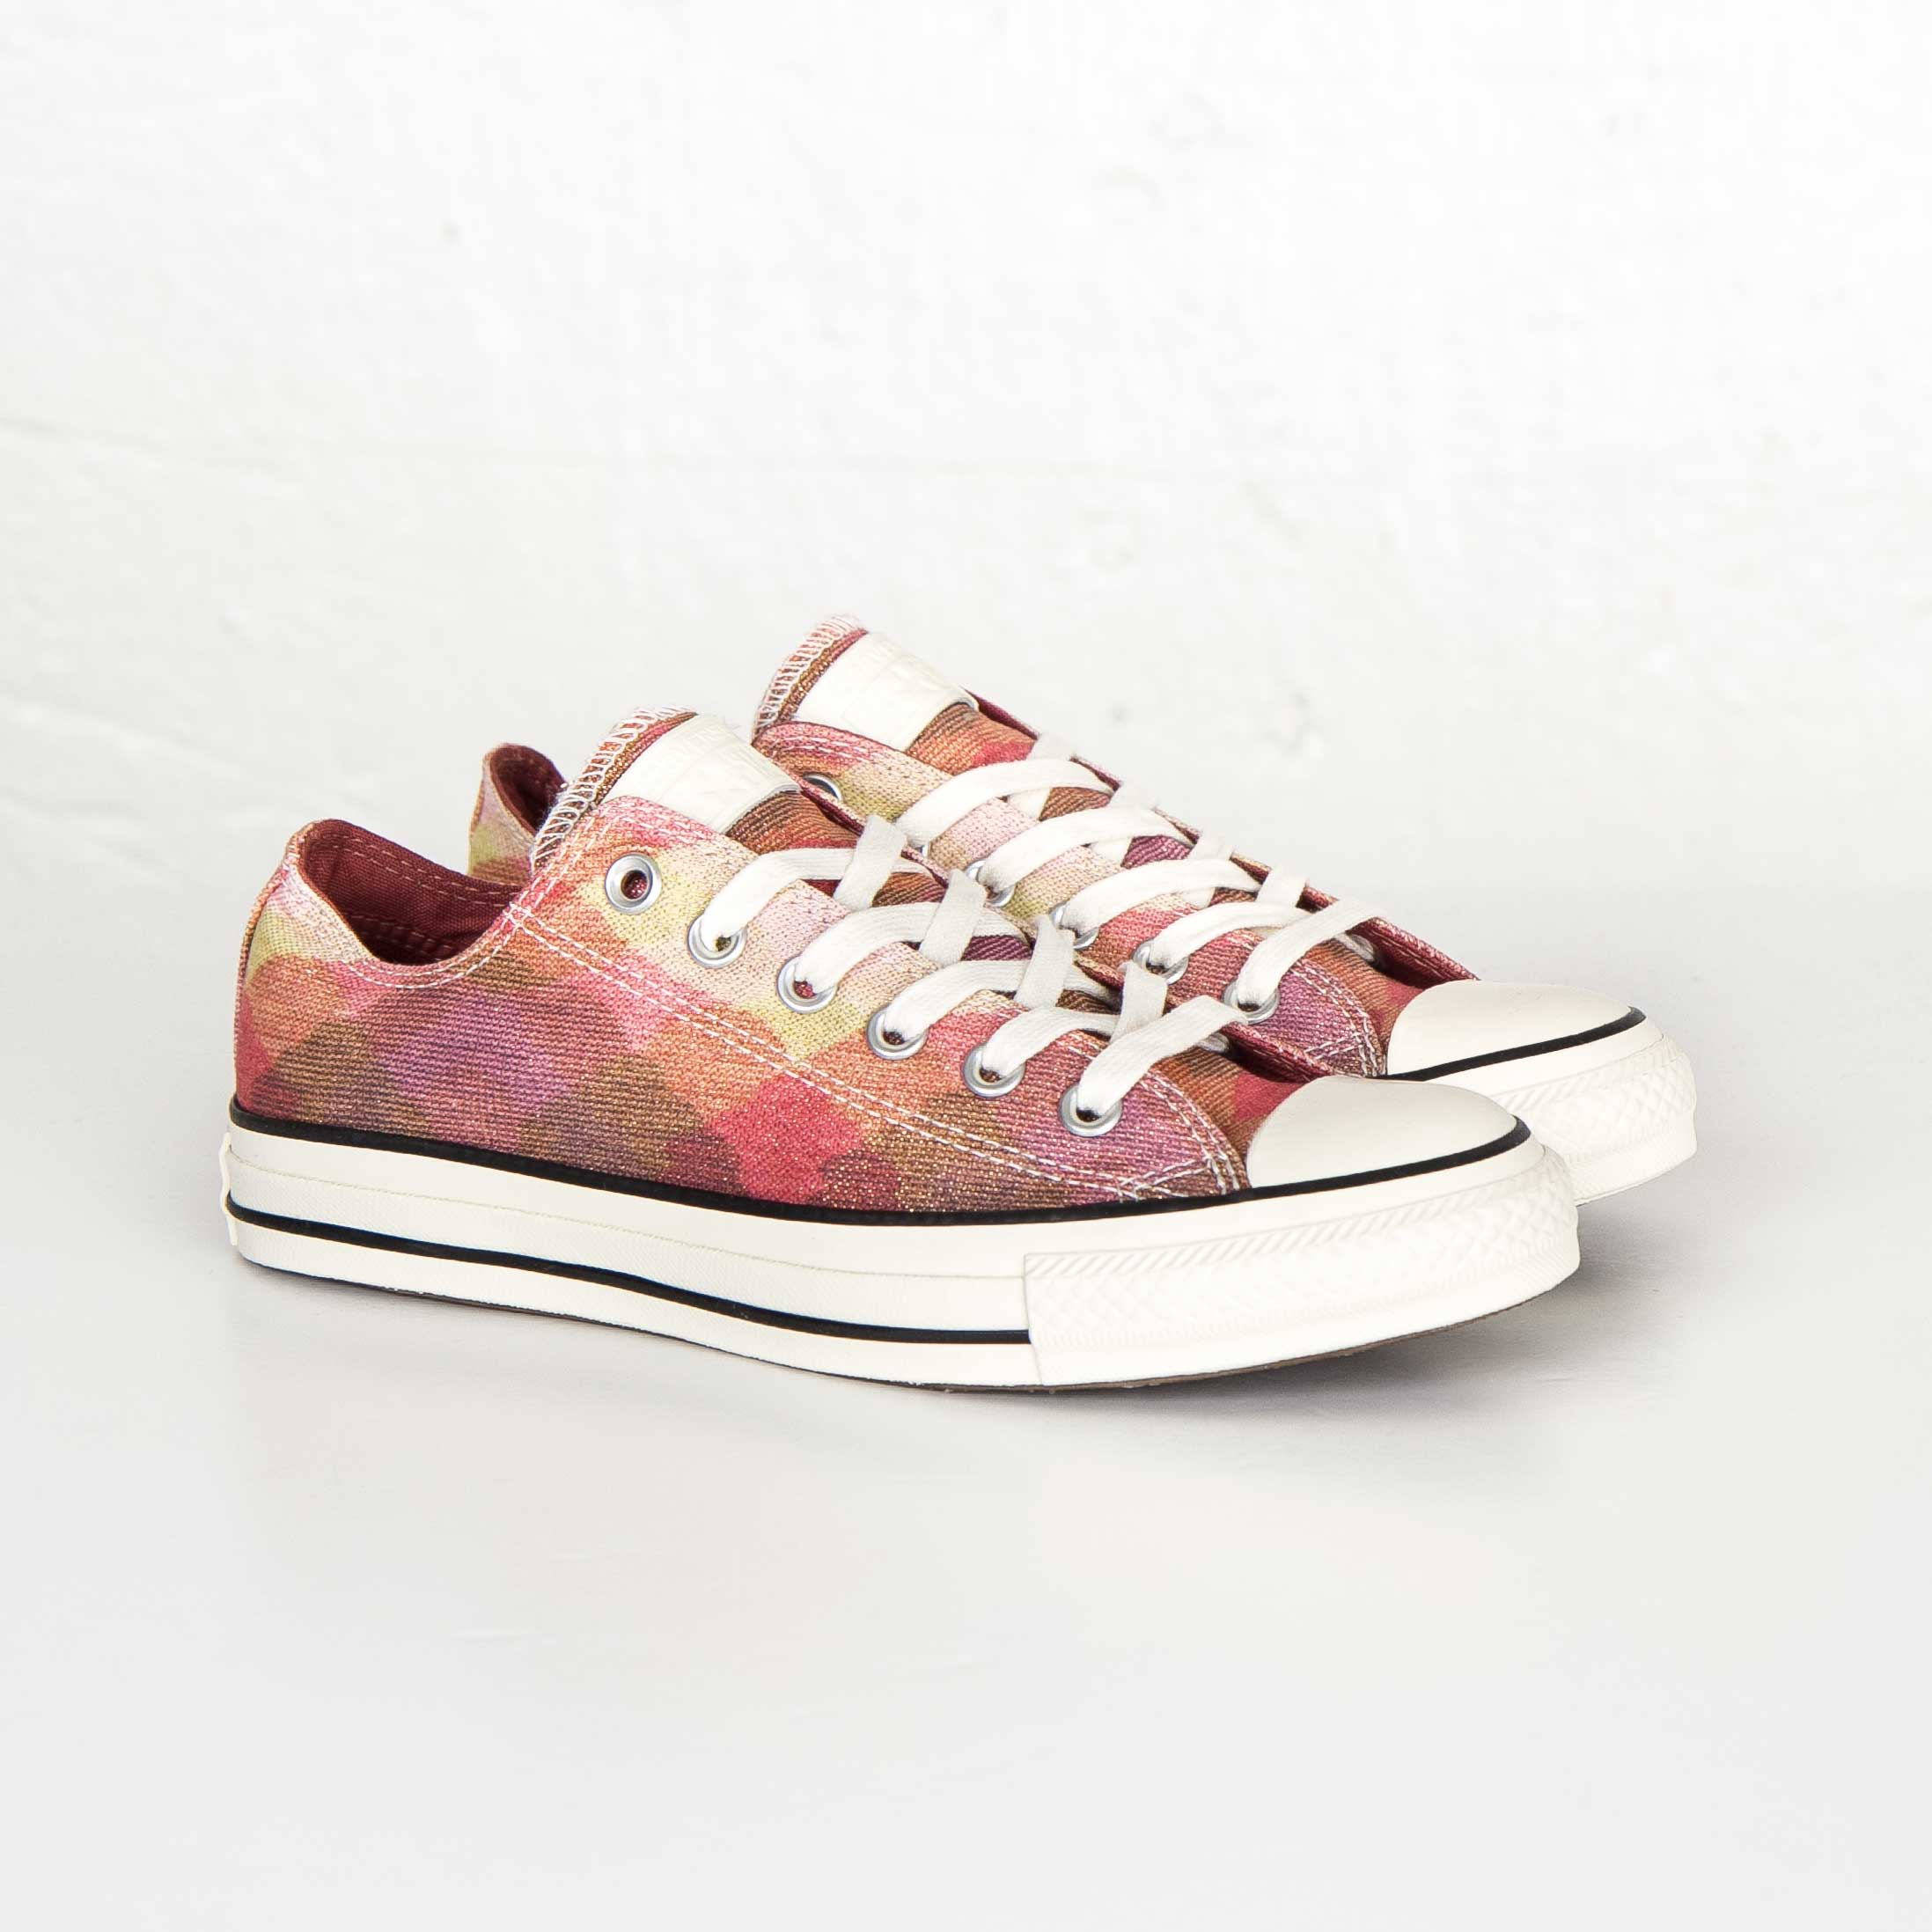 bad01b0161 Converse Chuck Taylor All Star x Missoni - 149691c - Sneakersnstuff ...